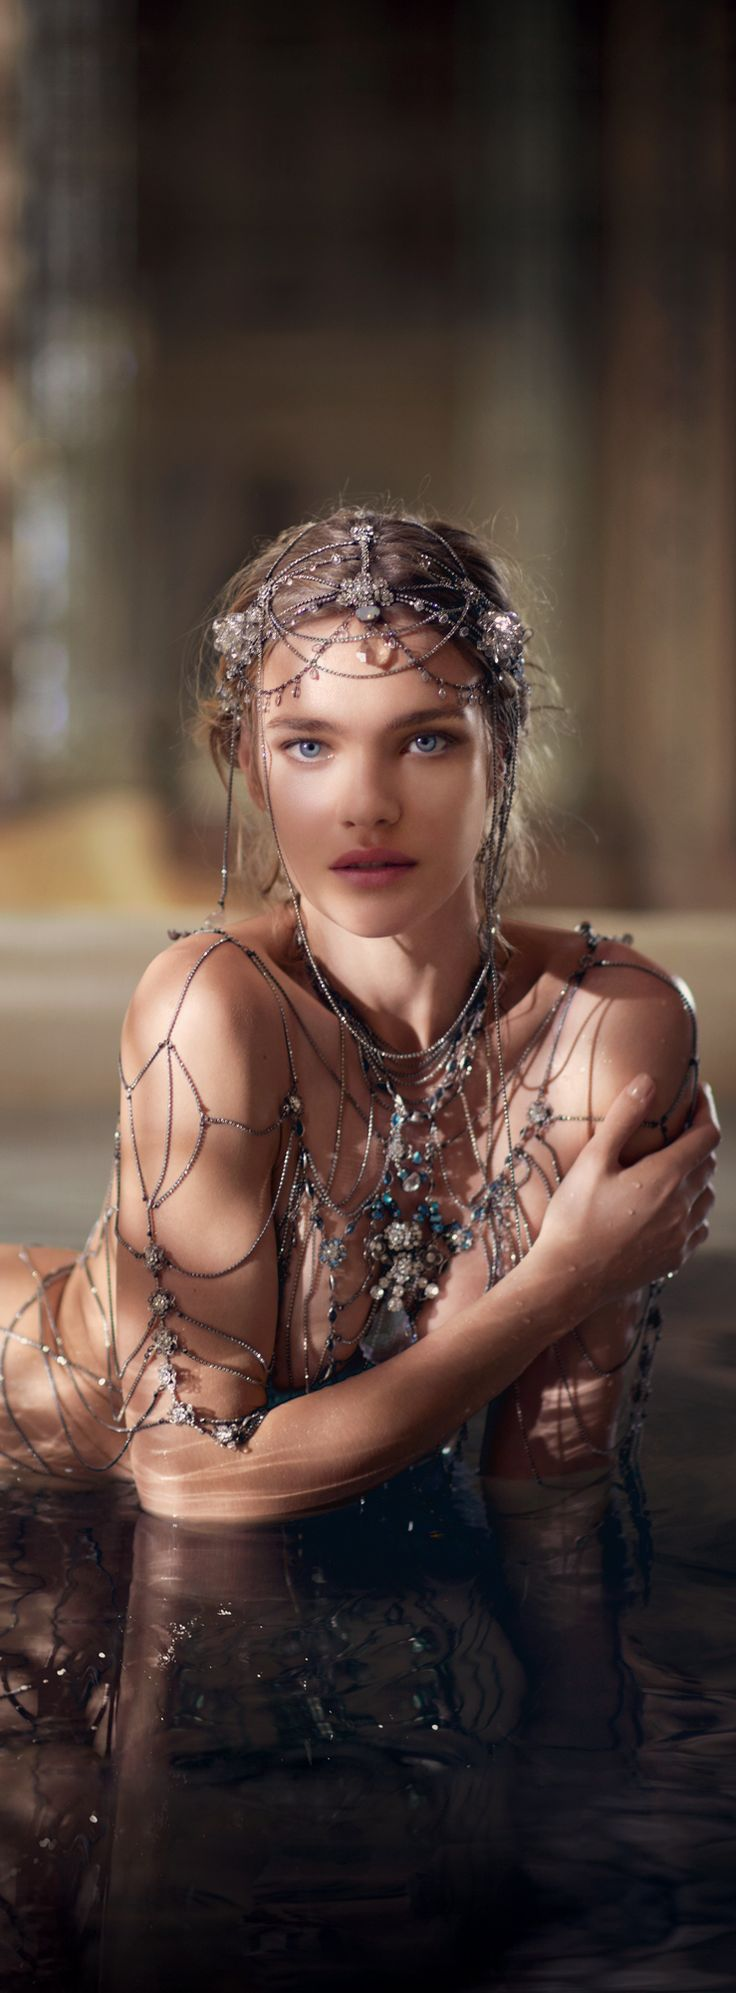 Fairytale fashion fantasy / karen cox. ♔ Natalia Vodianova The legend of #Shalimar by Guerlain